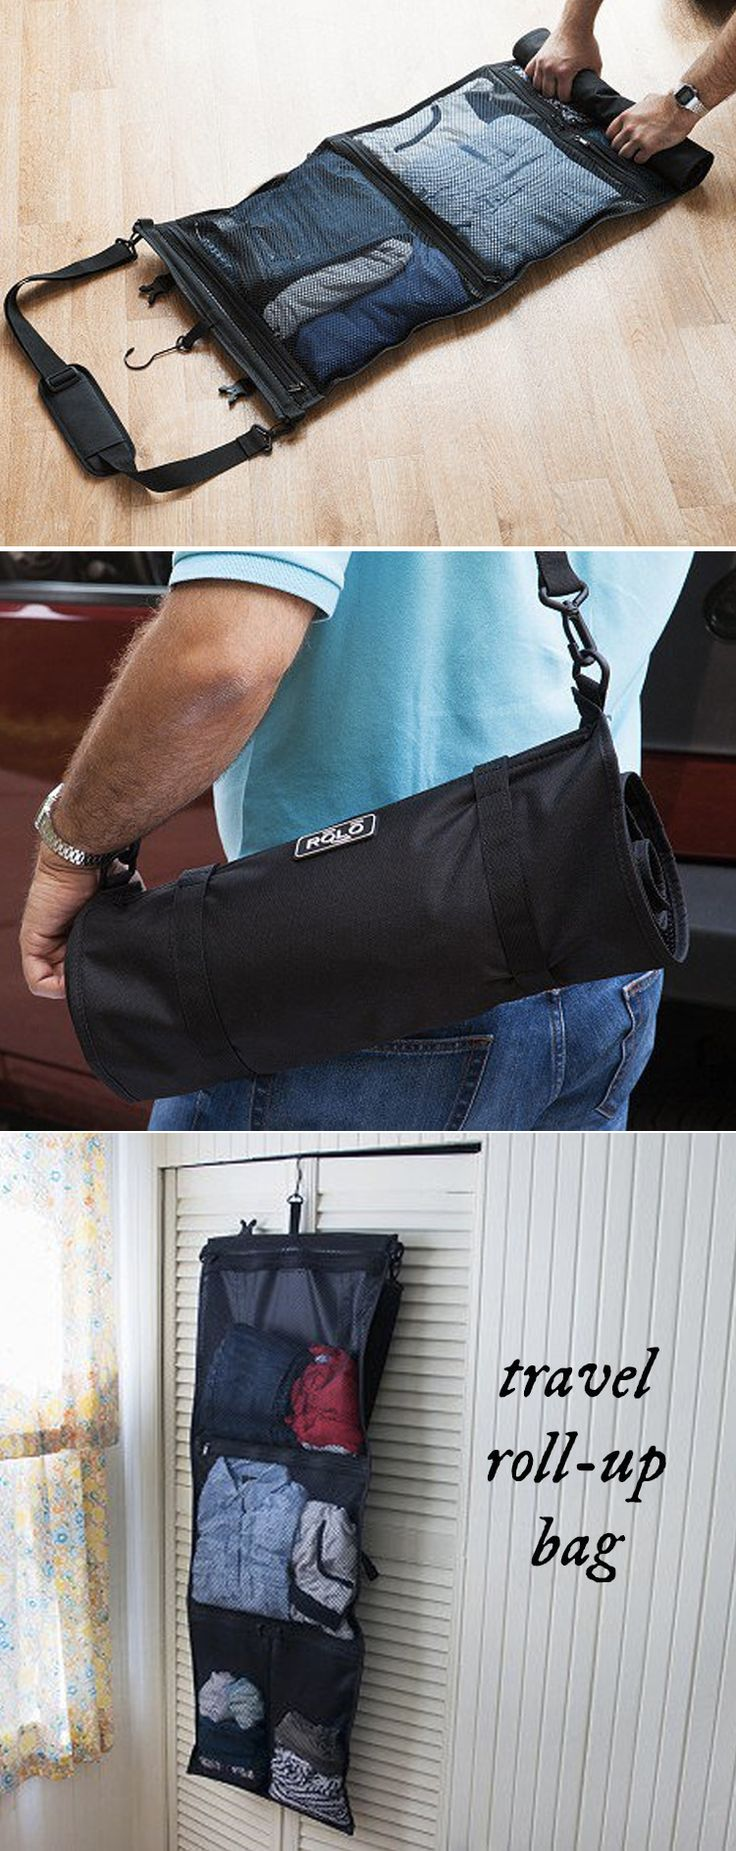 This lightweight travel bag has four separate mesh sections—two large and two small—that can hold up to four days' worth of clothing and toiletries. No need to pack & unpack a suitcase on short trips or when hiking, camping, or backpacking. Just roll and unroll Rolo.